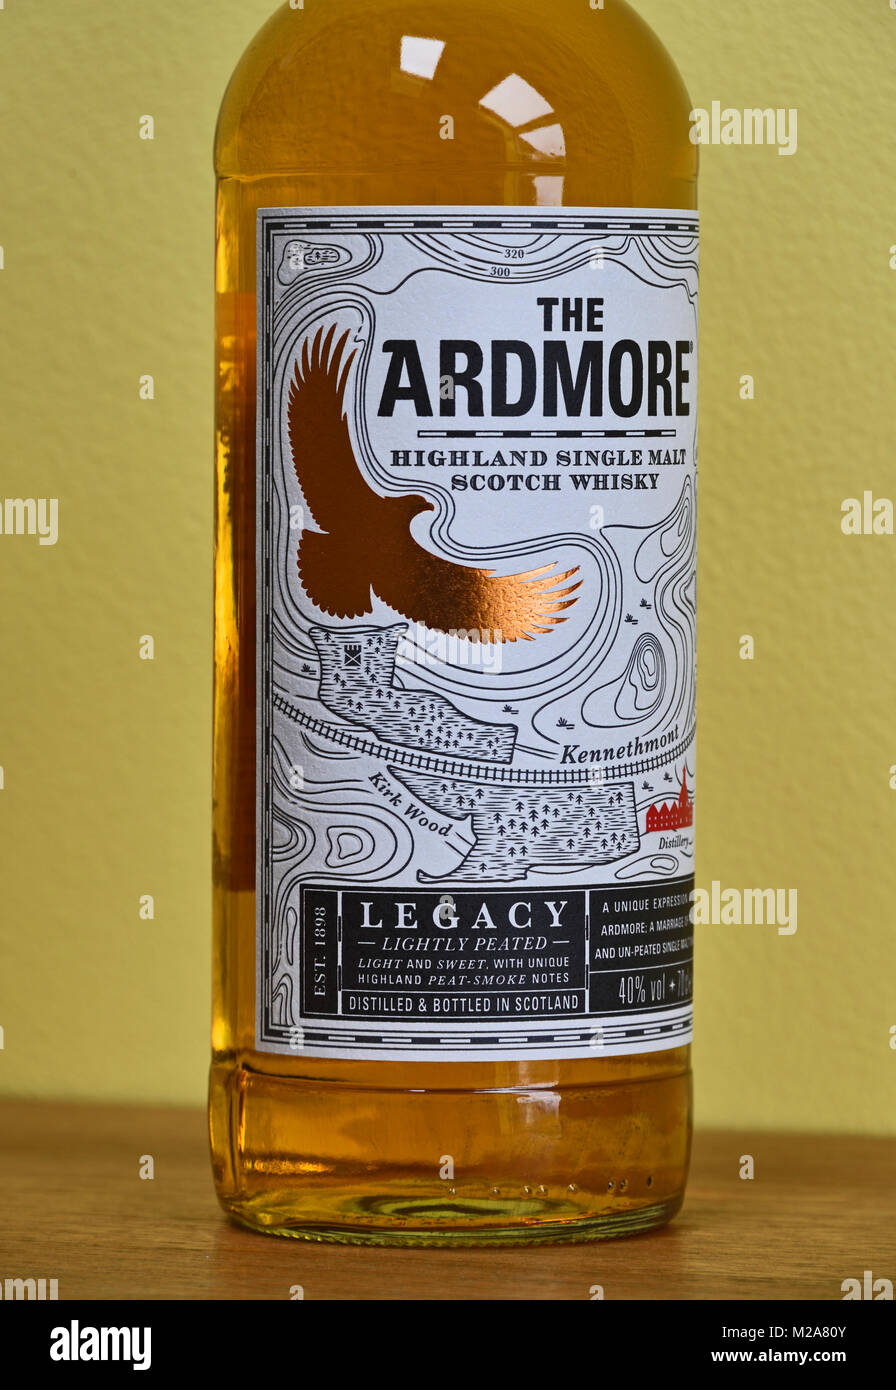 detail-of-label-on-bottle-of-the-ardmore-legacy-highland-single-malt-M2A80Y.jpg